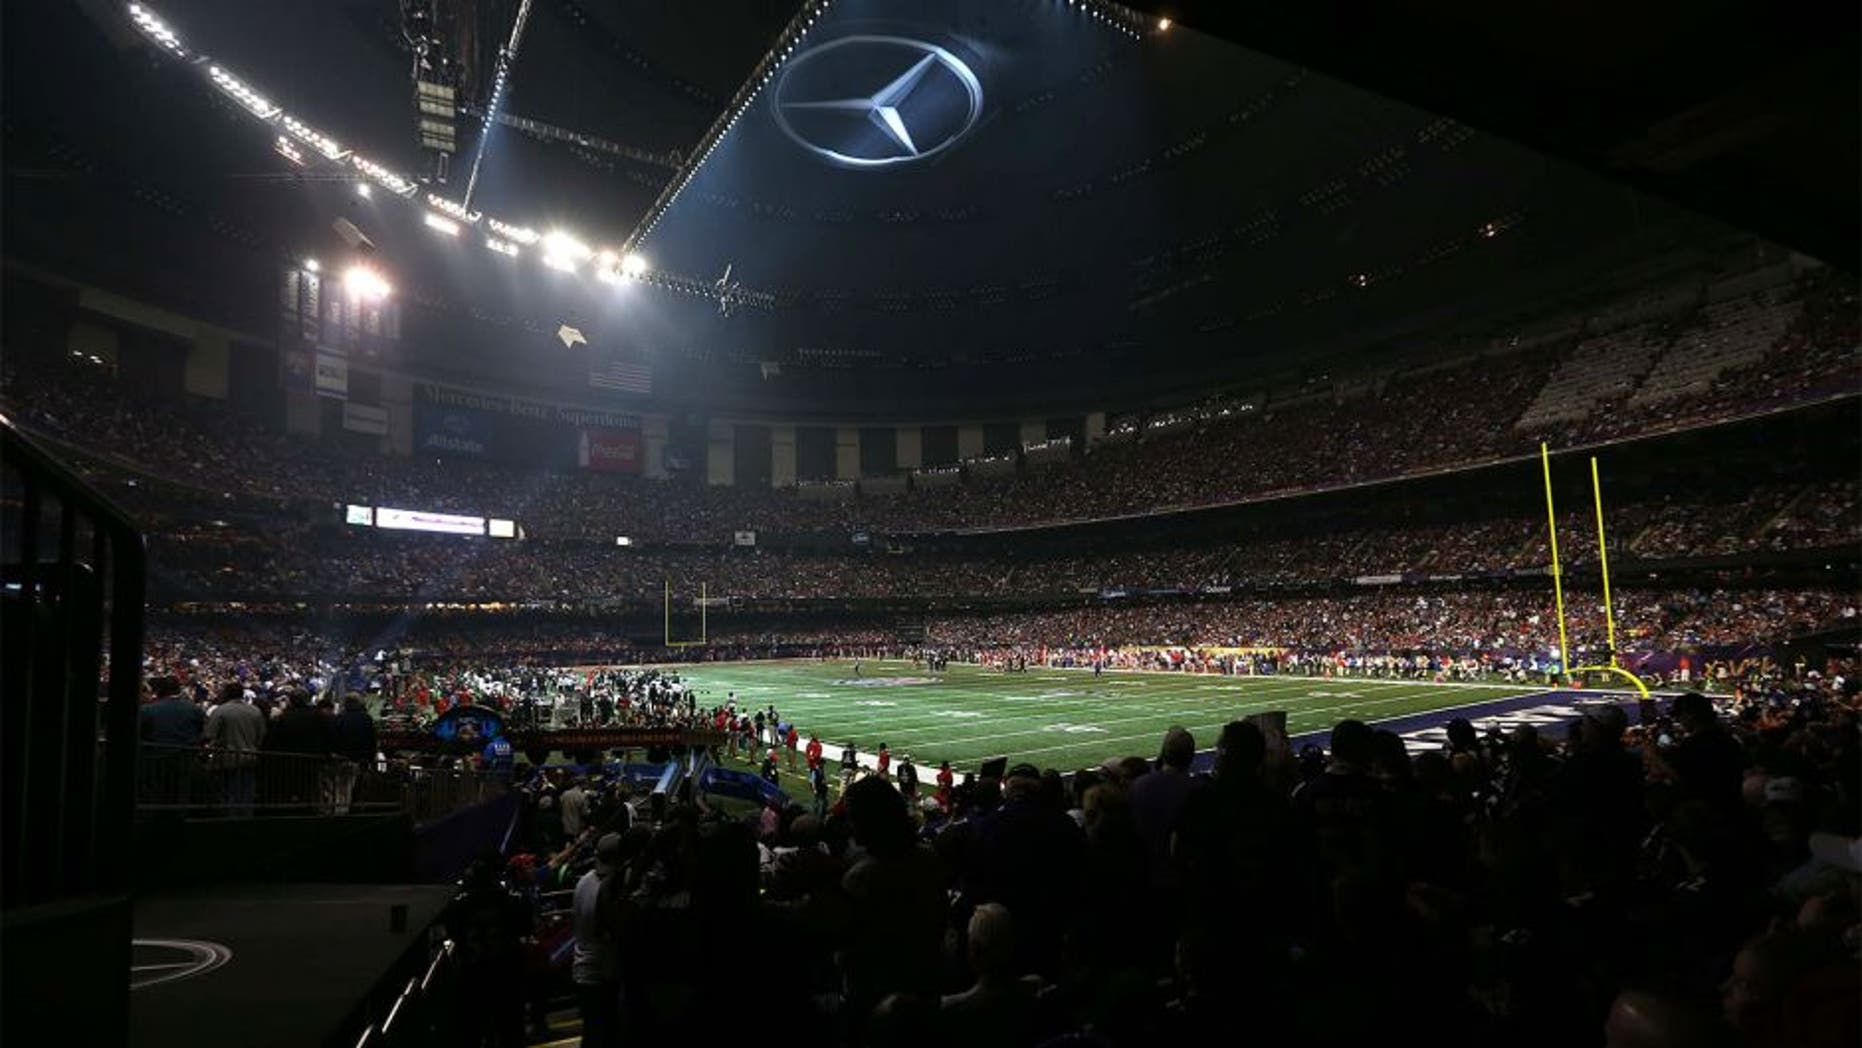 Feb 3, 2013; New Orleans, LA, USA; General view of the power outage during the third quarter in Super Bowl XLVII between the San Francisco 49ers and the Baltimore Ravens at the Mercedes-Benz Superdome. Mandatory Credit: Crystal LoGiudice-USA TODAY Sports